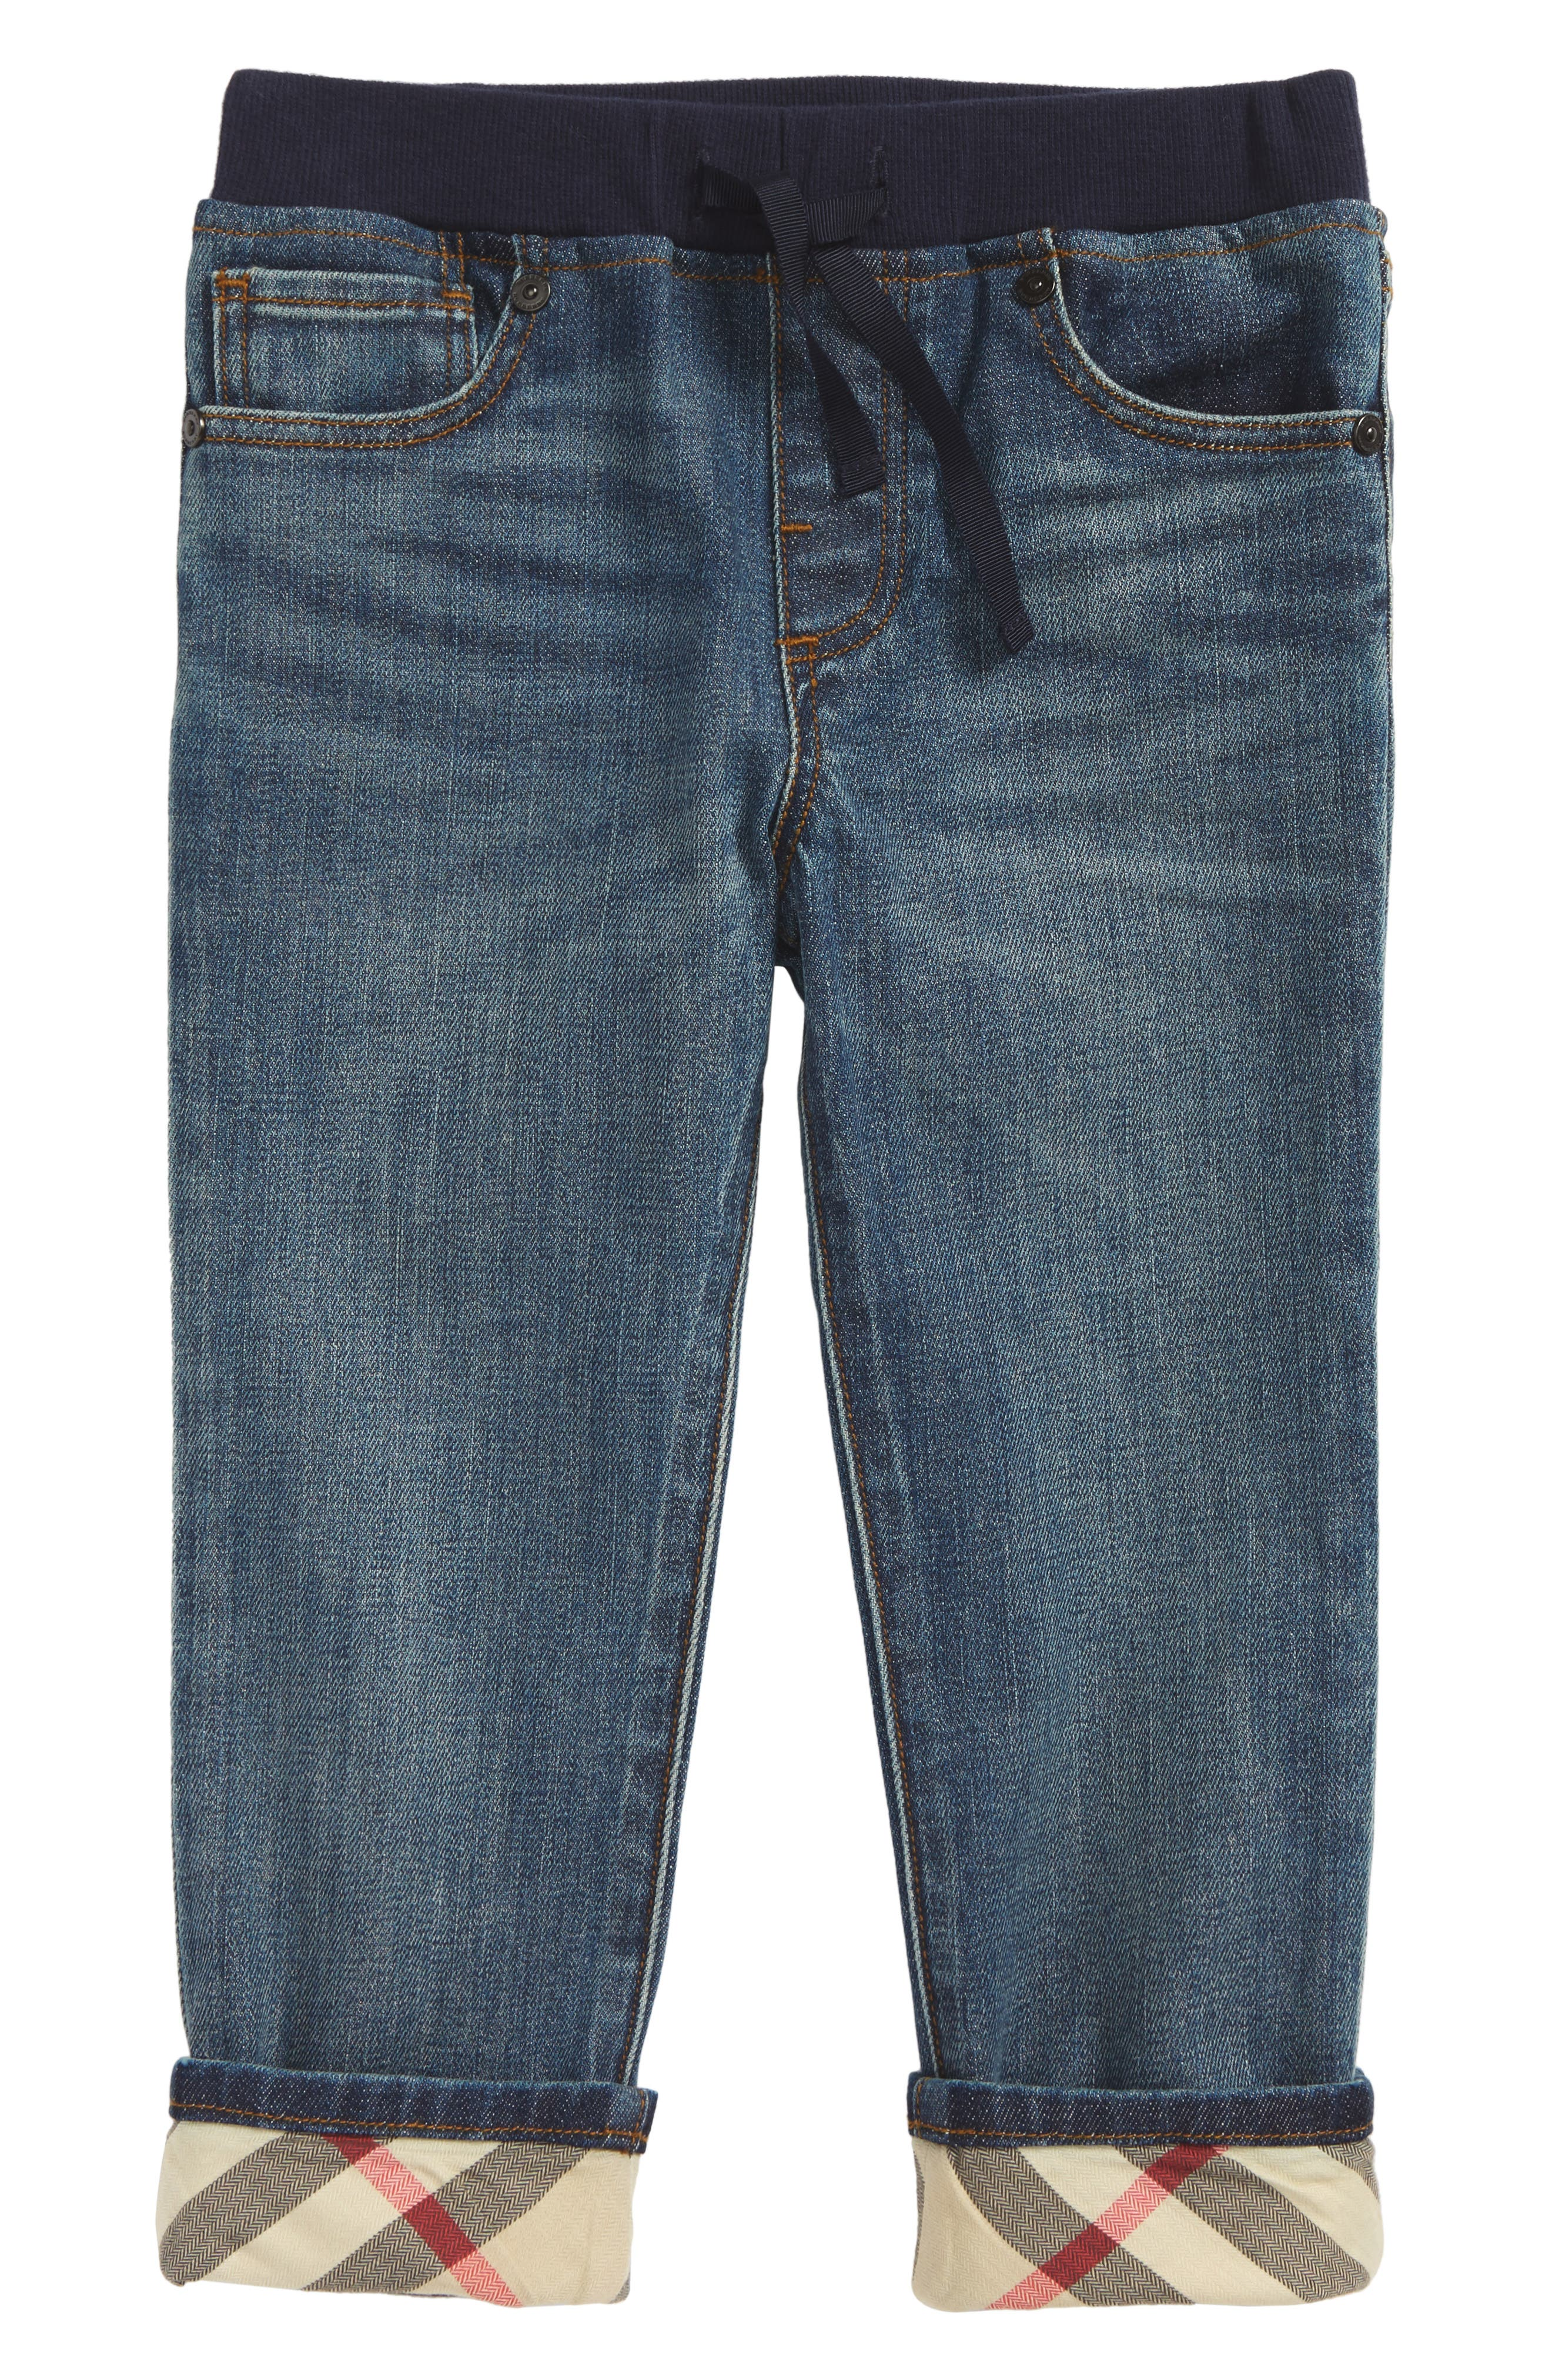 Main Image - Burberry Check Cuff Pull-On Jeans (Toddler Boys)